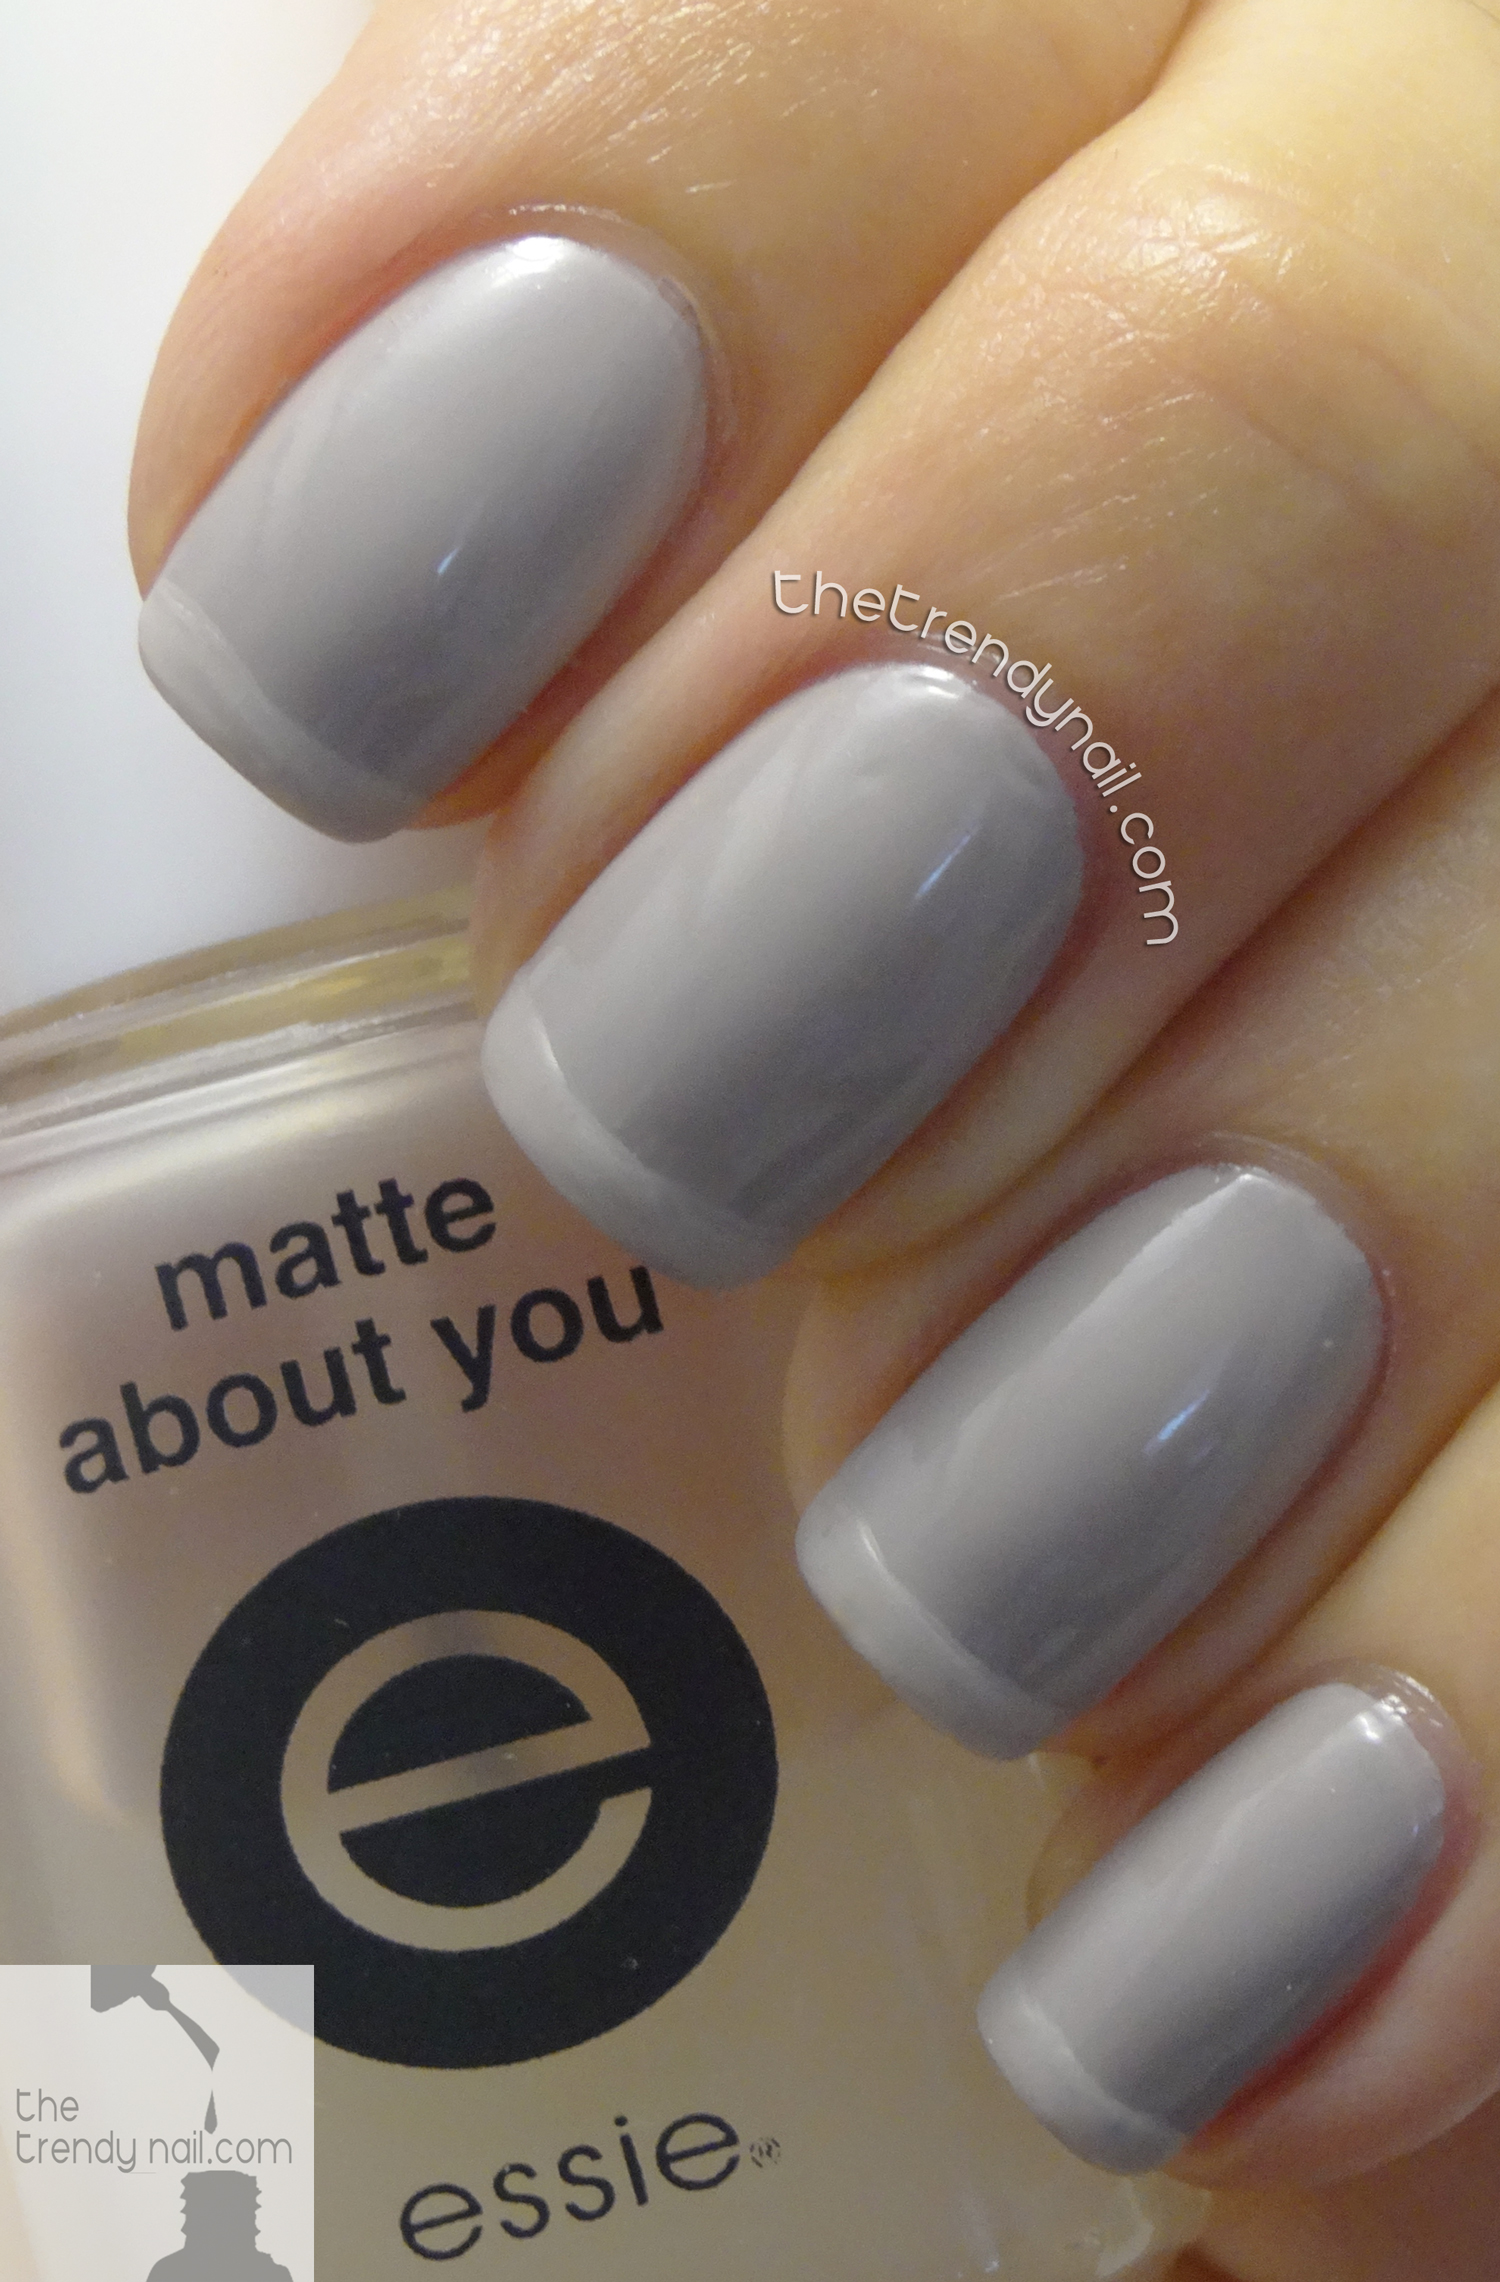 ESSIE FALL FRENCH MANICURE WITH MATTE TIPS - The Trendy Nail